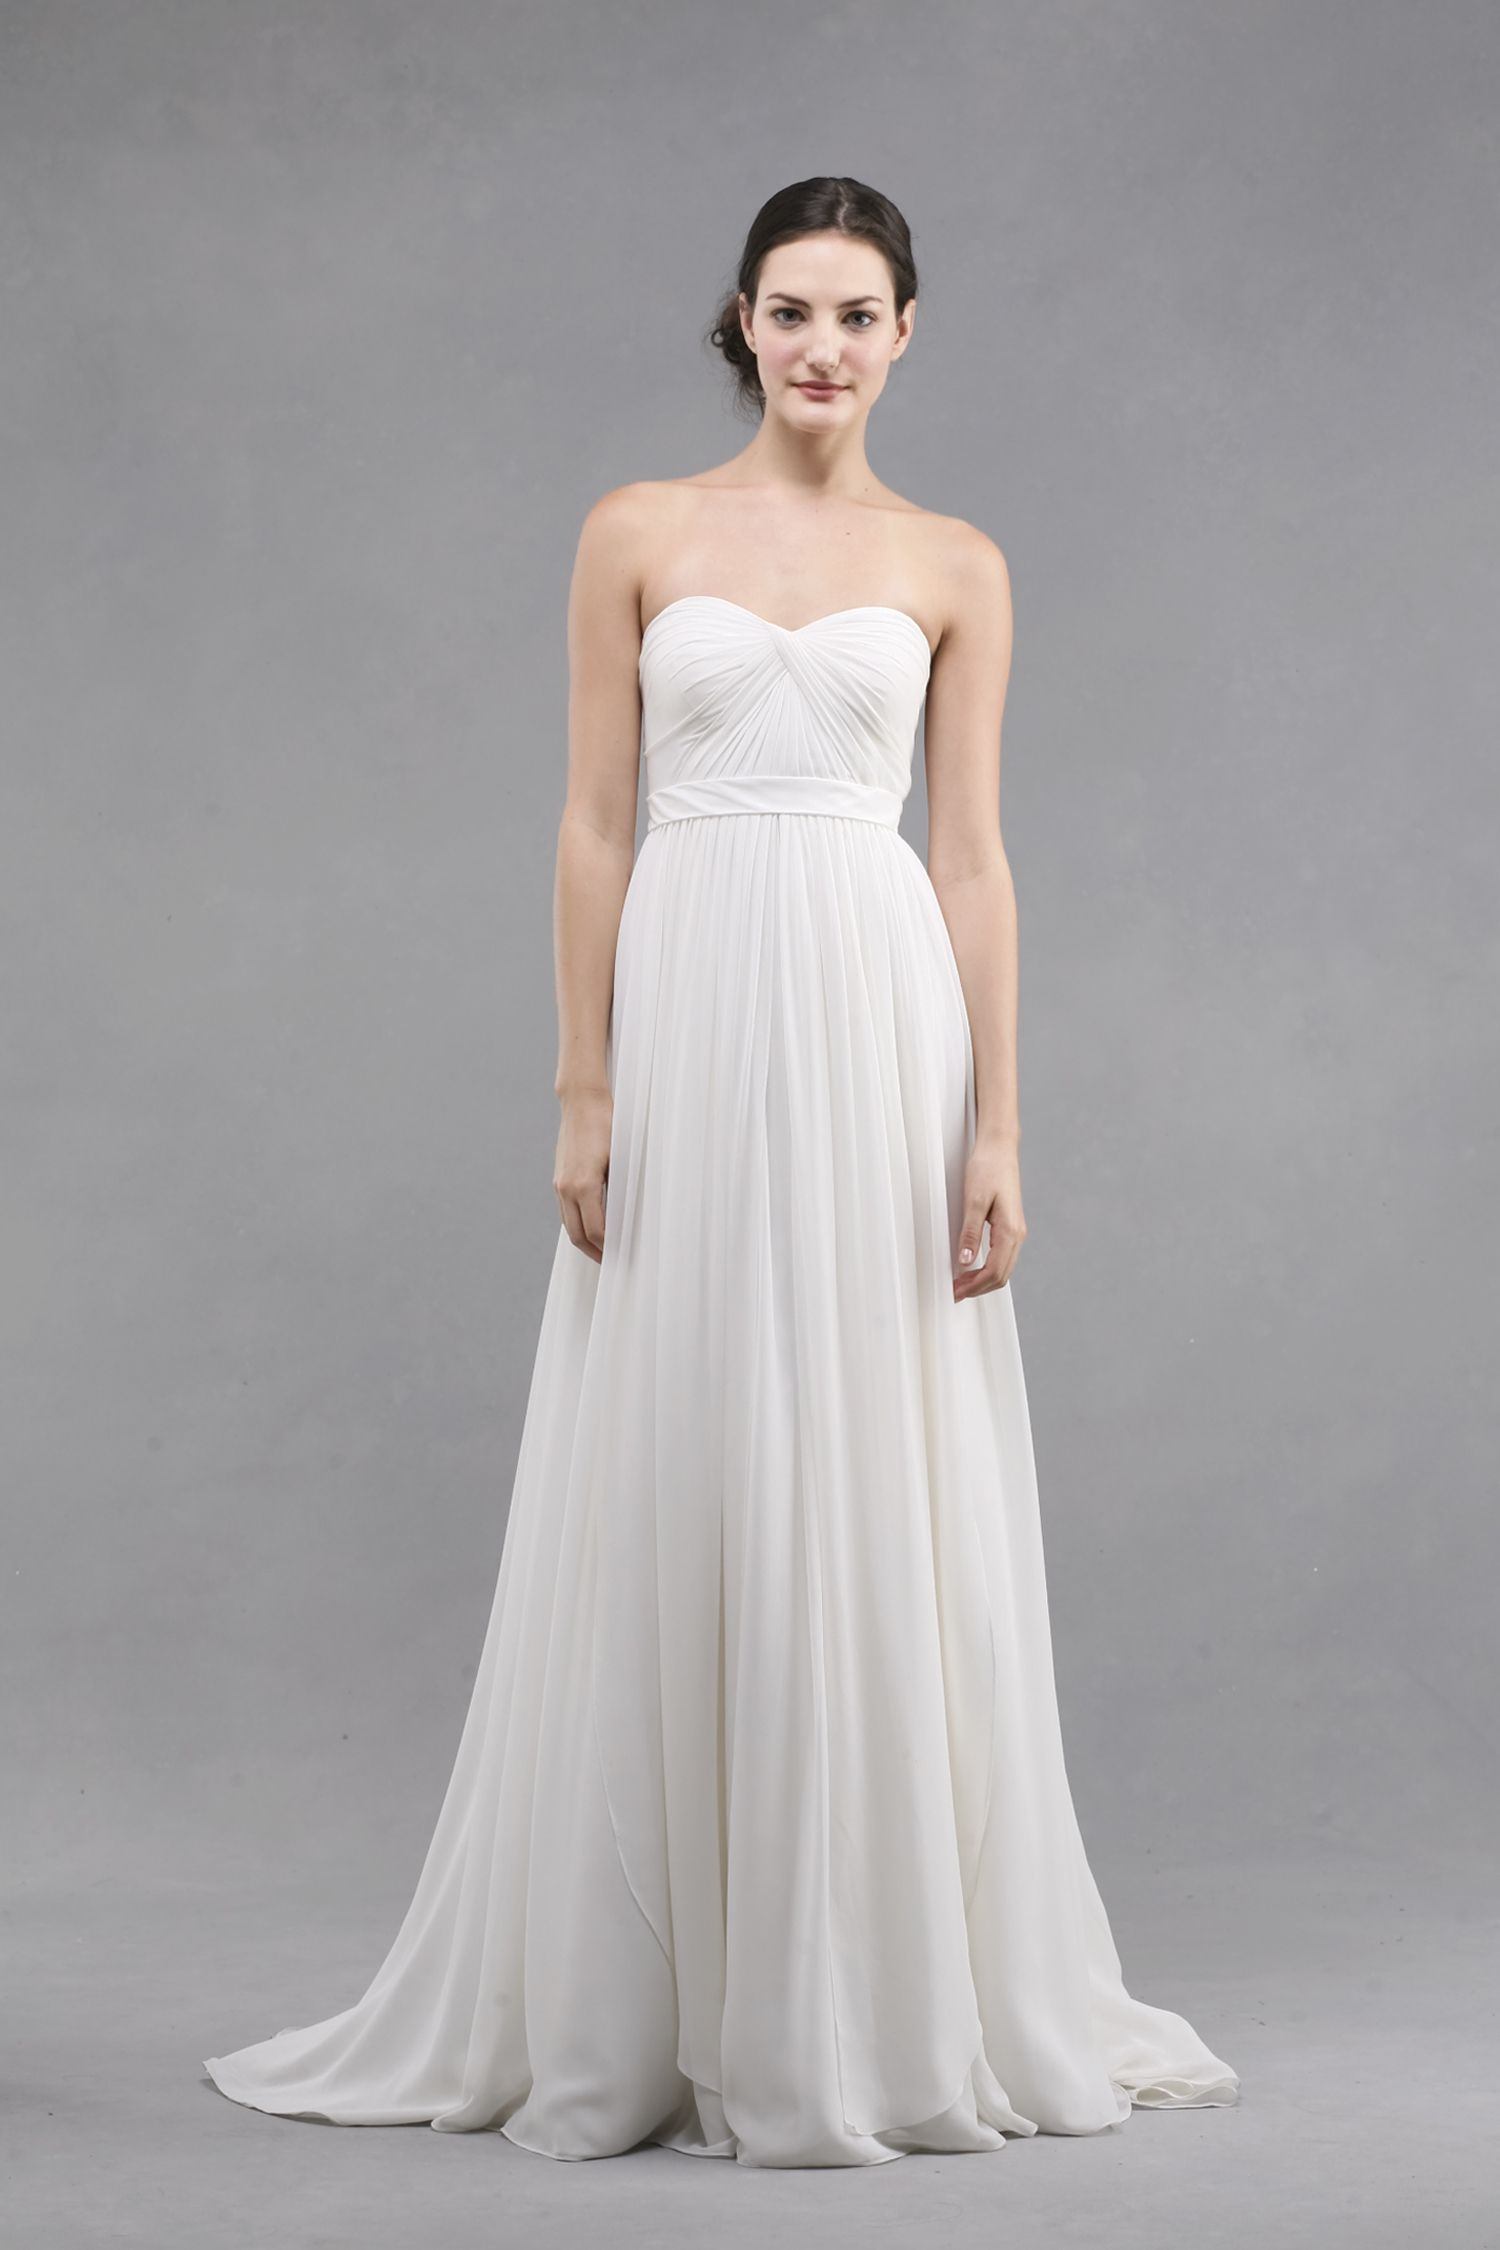 Jenny yoo wedding dress colllection spring summer 2013 jenny yoo monarch wedding dress for sale convertible neckline options with the panels on the dress or leave dress as is with a strapless neck ombrellifo Image collections